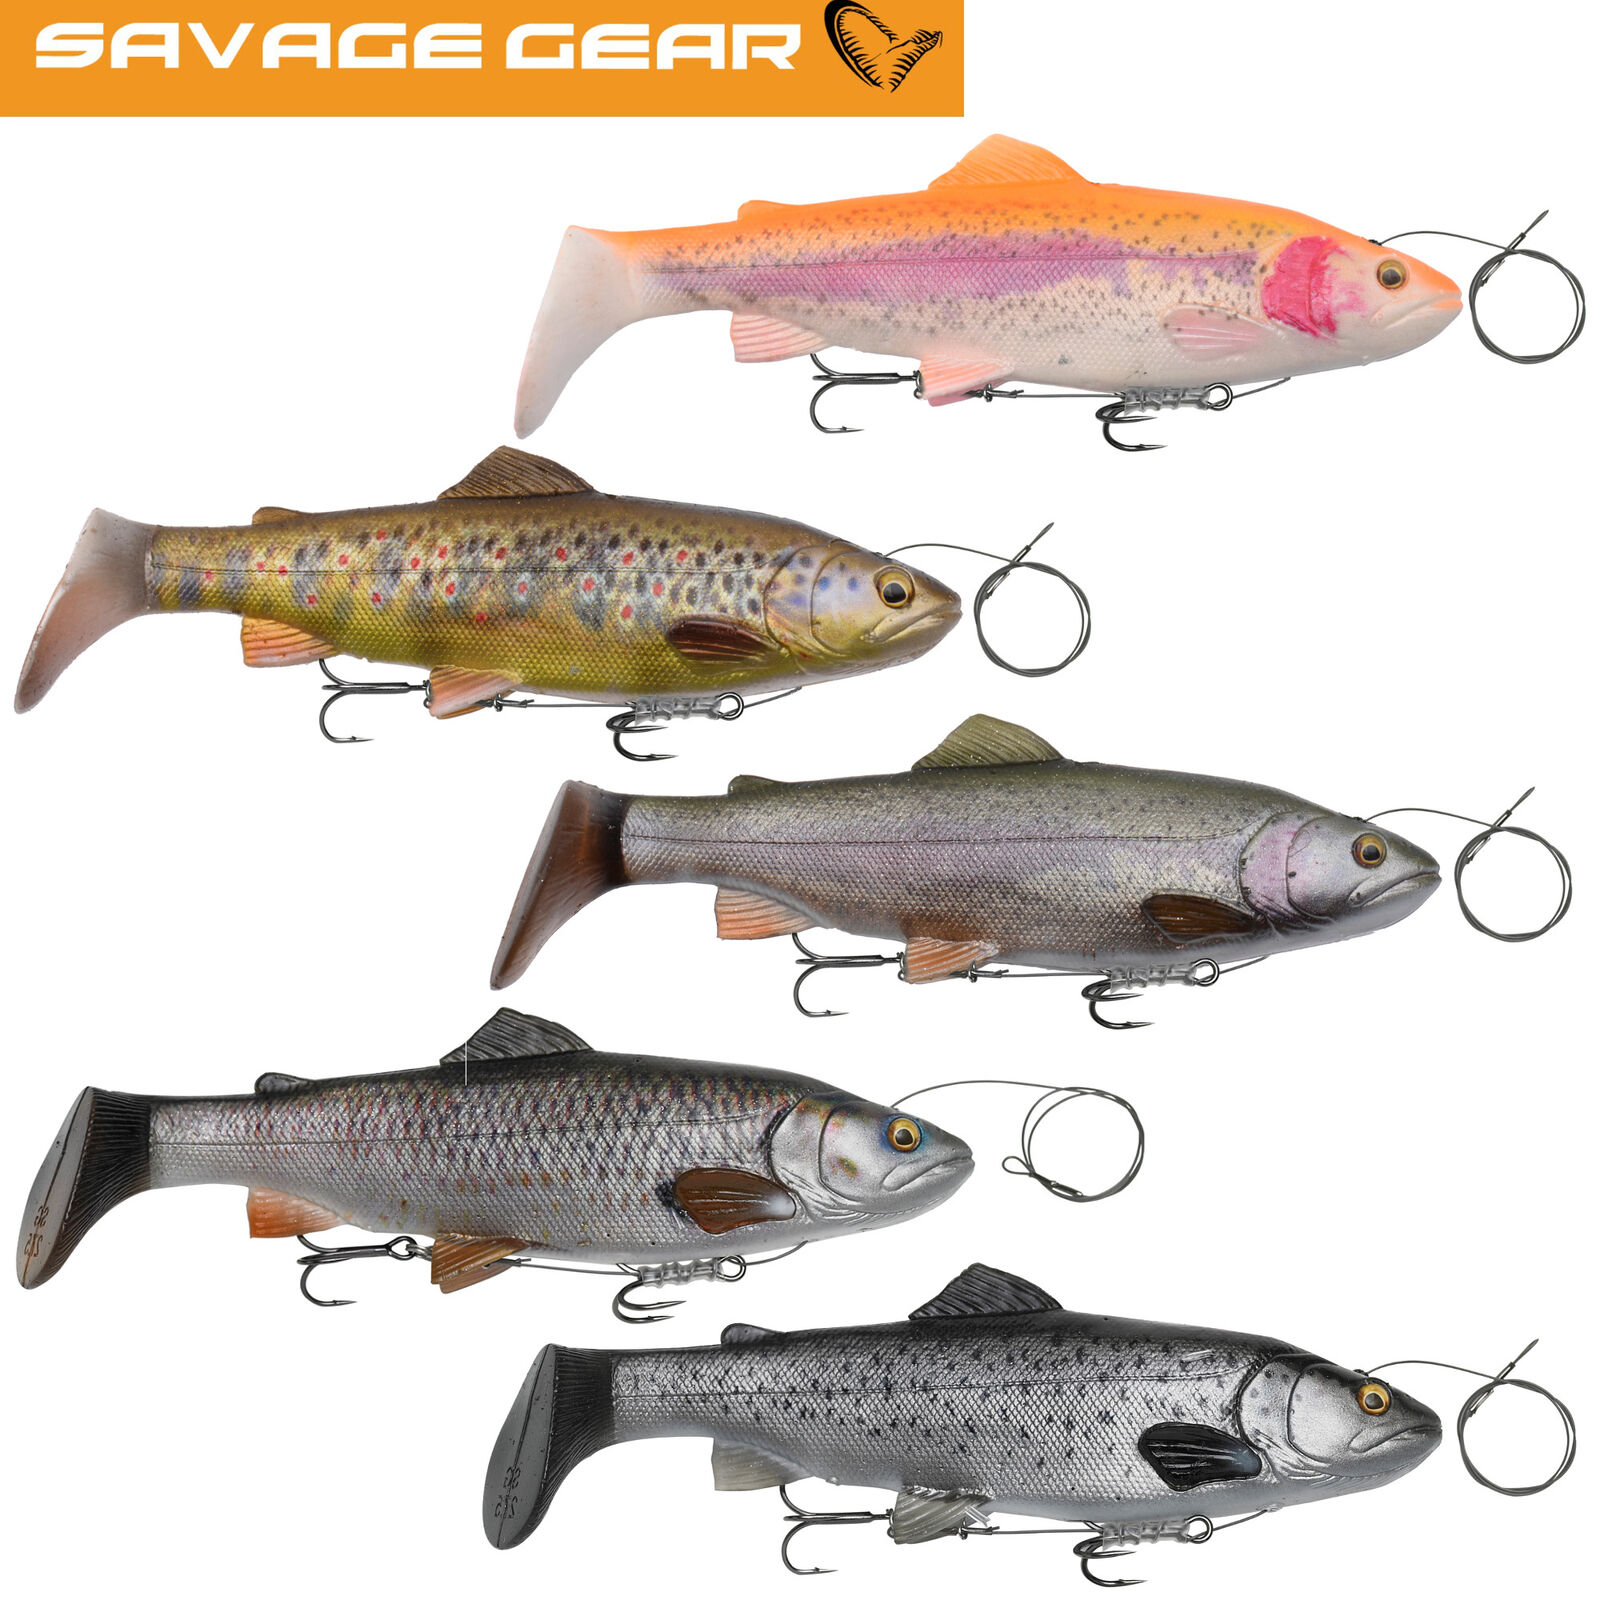 SAVAGE GEAR 4D Line Thru Trout Rattle Shad 27,5cm MS Swimbait LIMITED EDITION